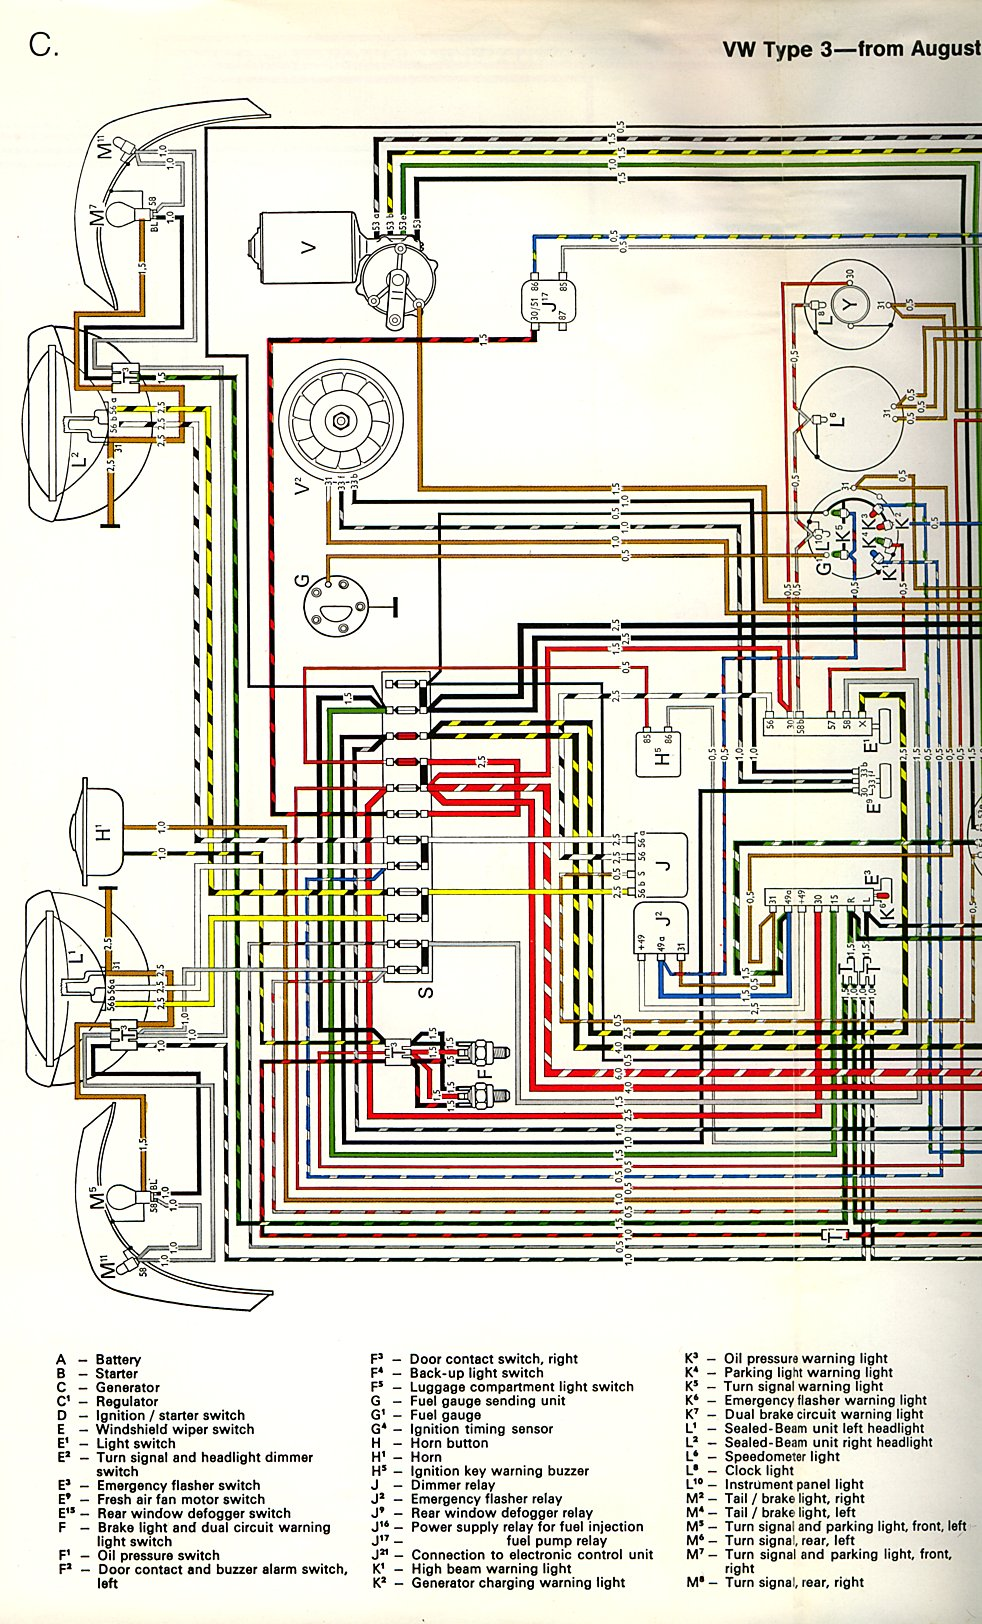 type3_72a thesamba com type 3 wiring diagrams 1972 VW Beetle Wiring Diagram at panicattacktreatment.co